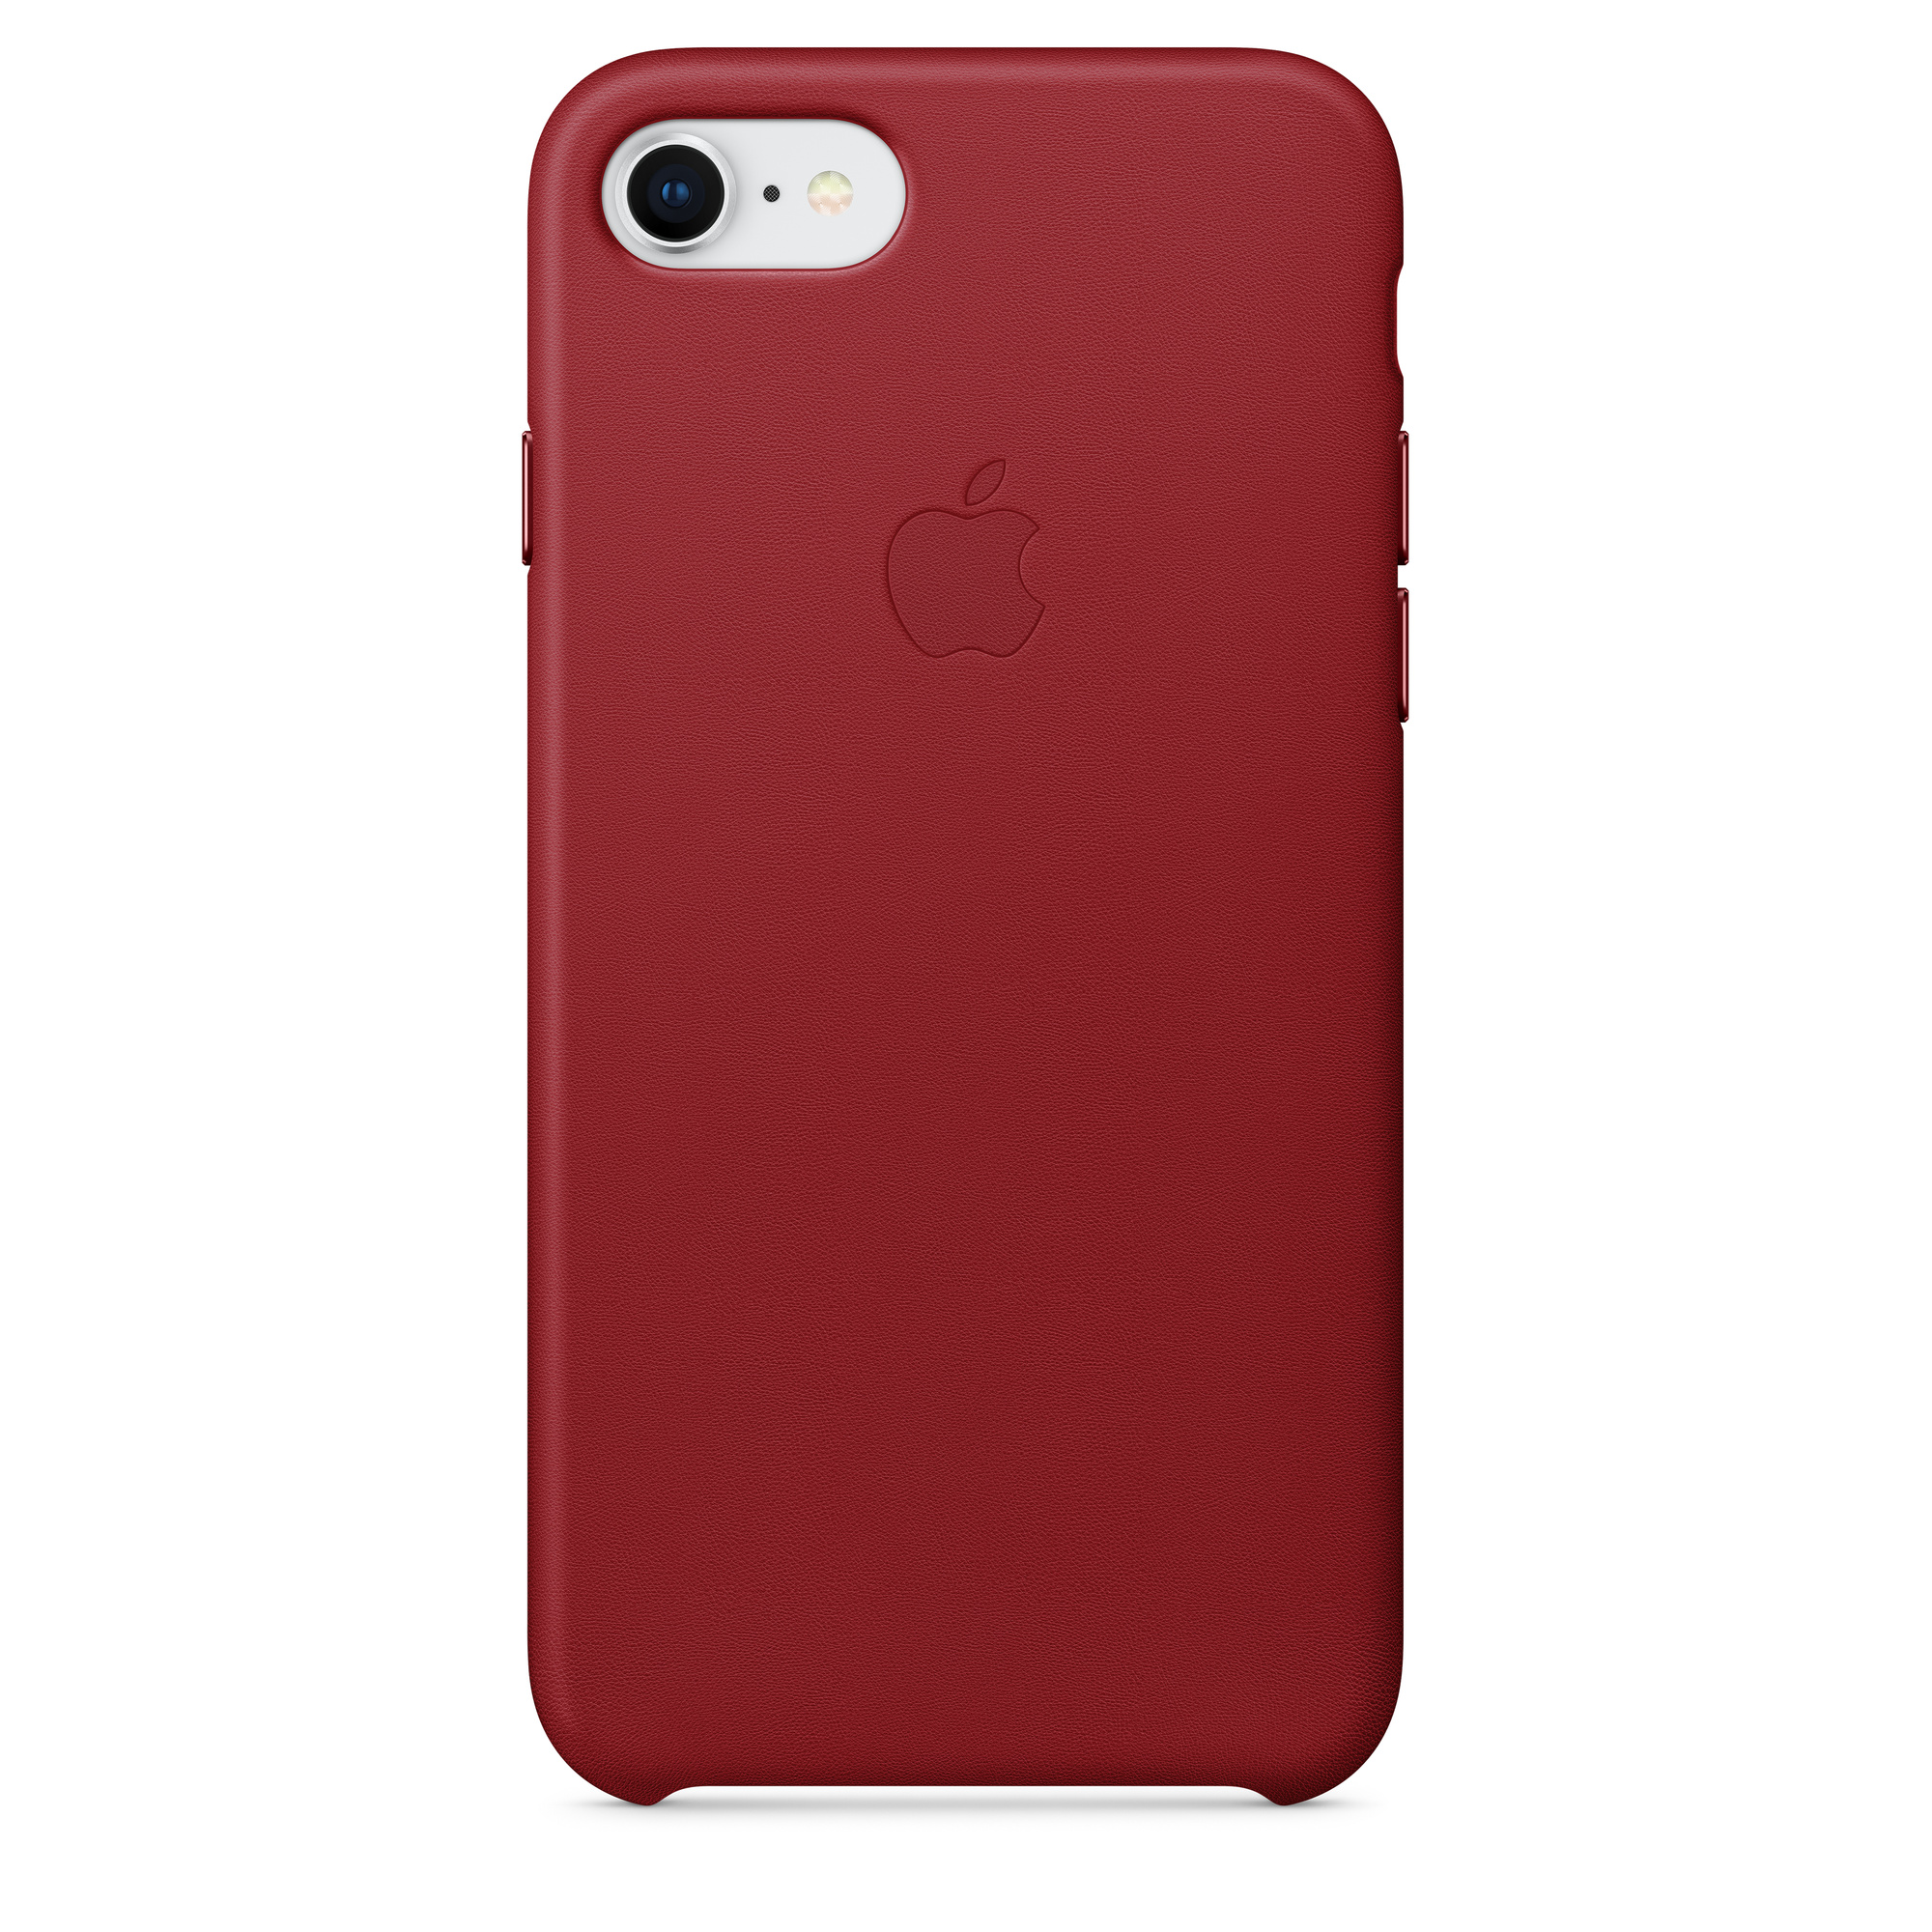 competitive price 4b85f 5d7e4 iPhone 8 / 7 Leather Case - (PRODUCT)RED